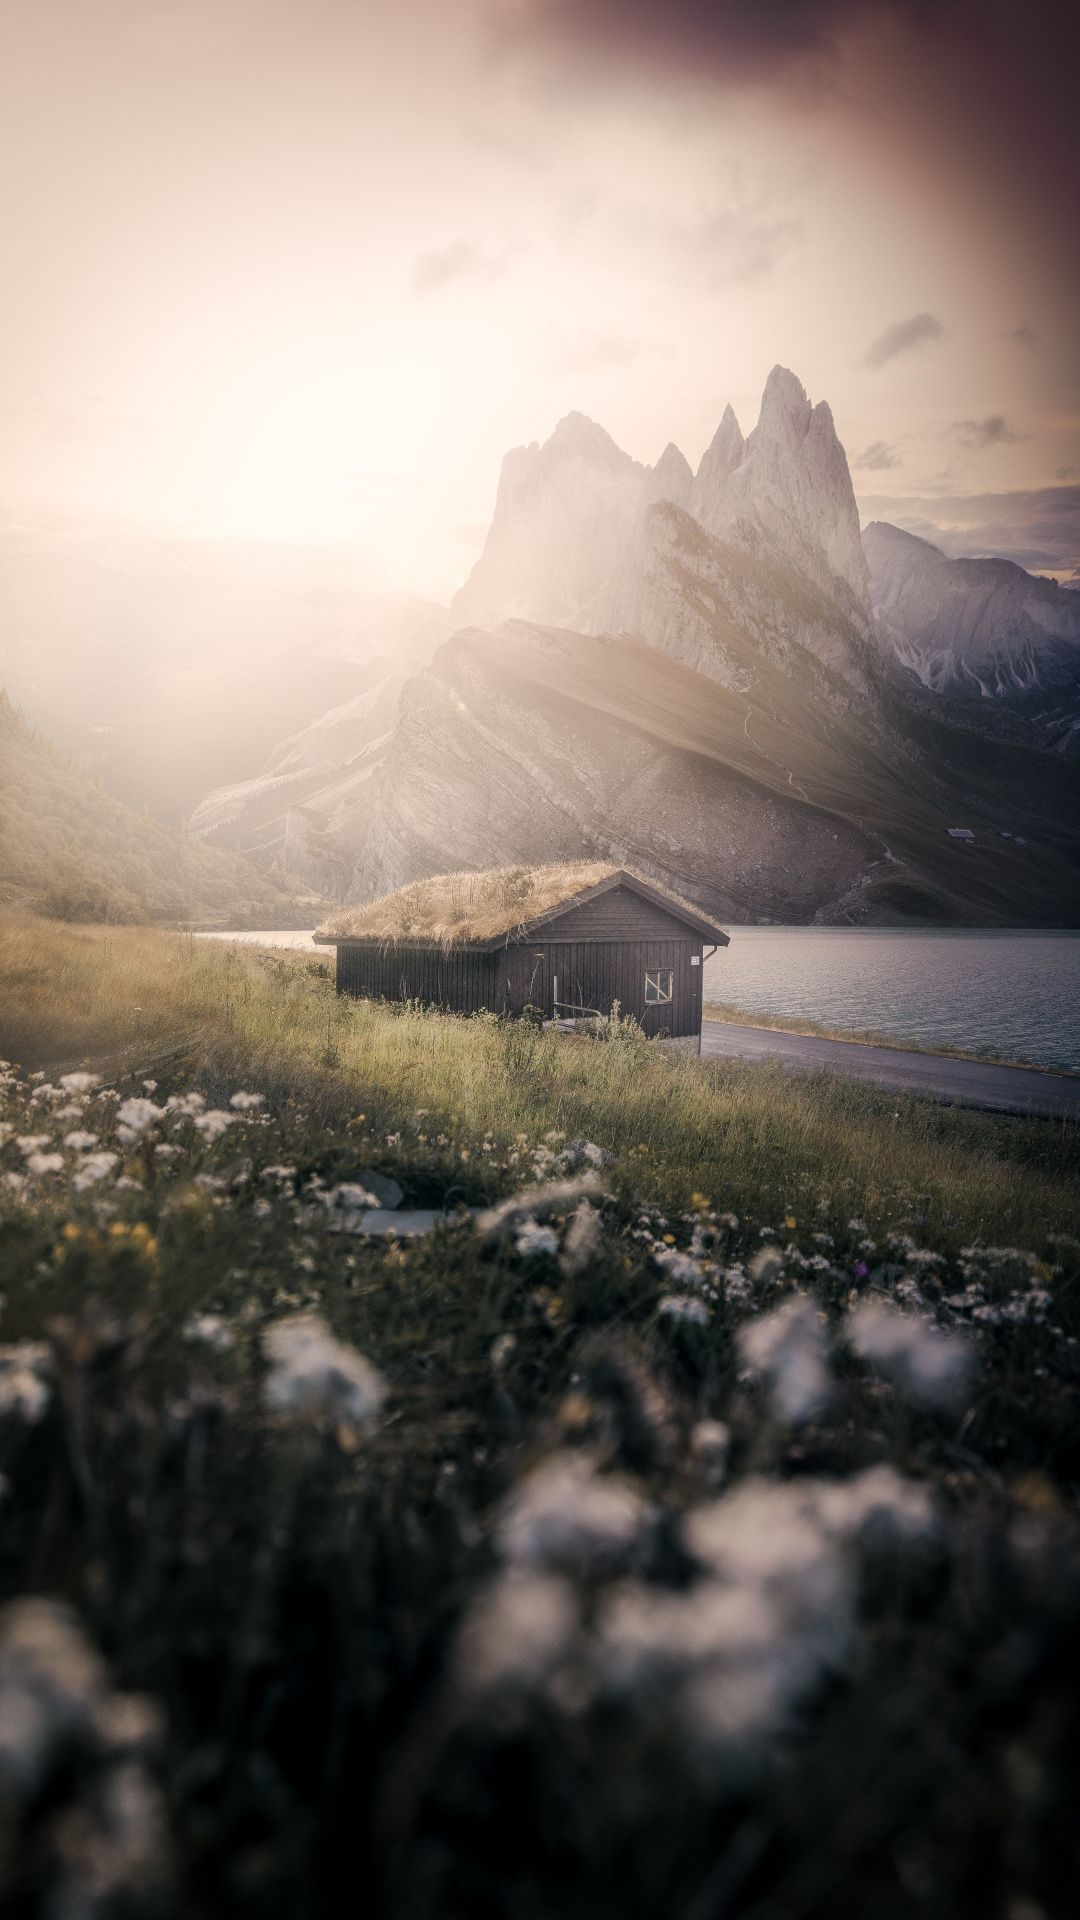 Hut Nature Dolomites Mountains Landscape 1080x1920 Wallpaper